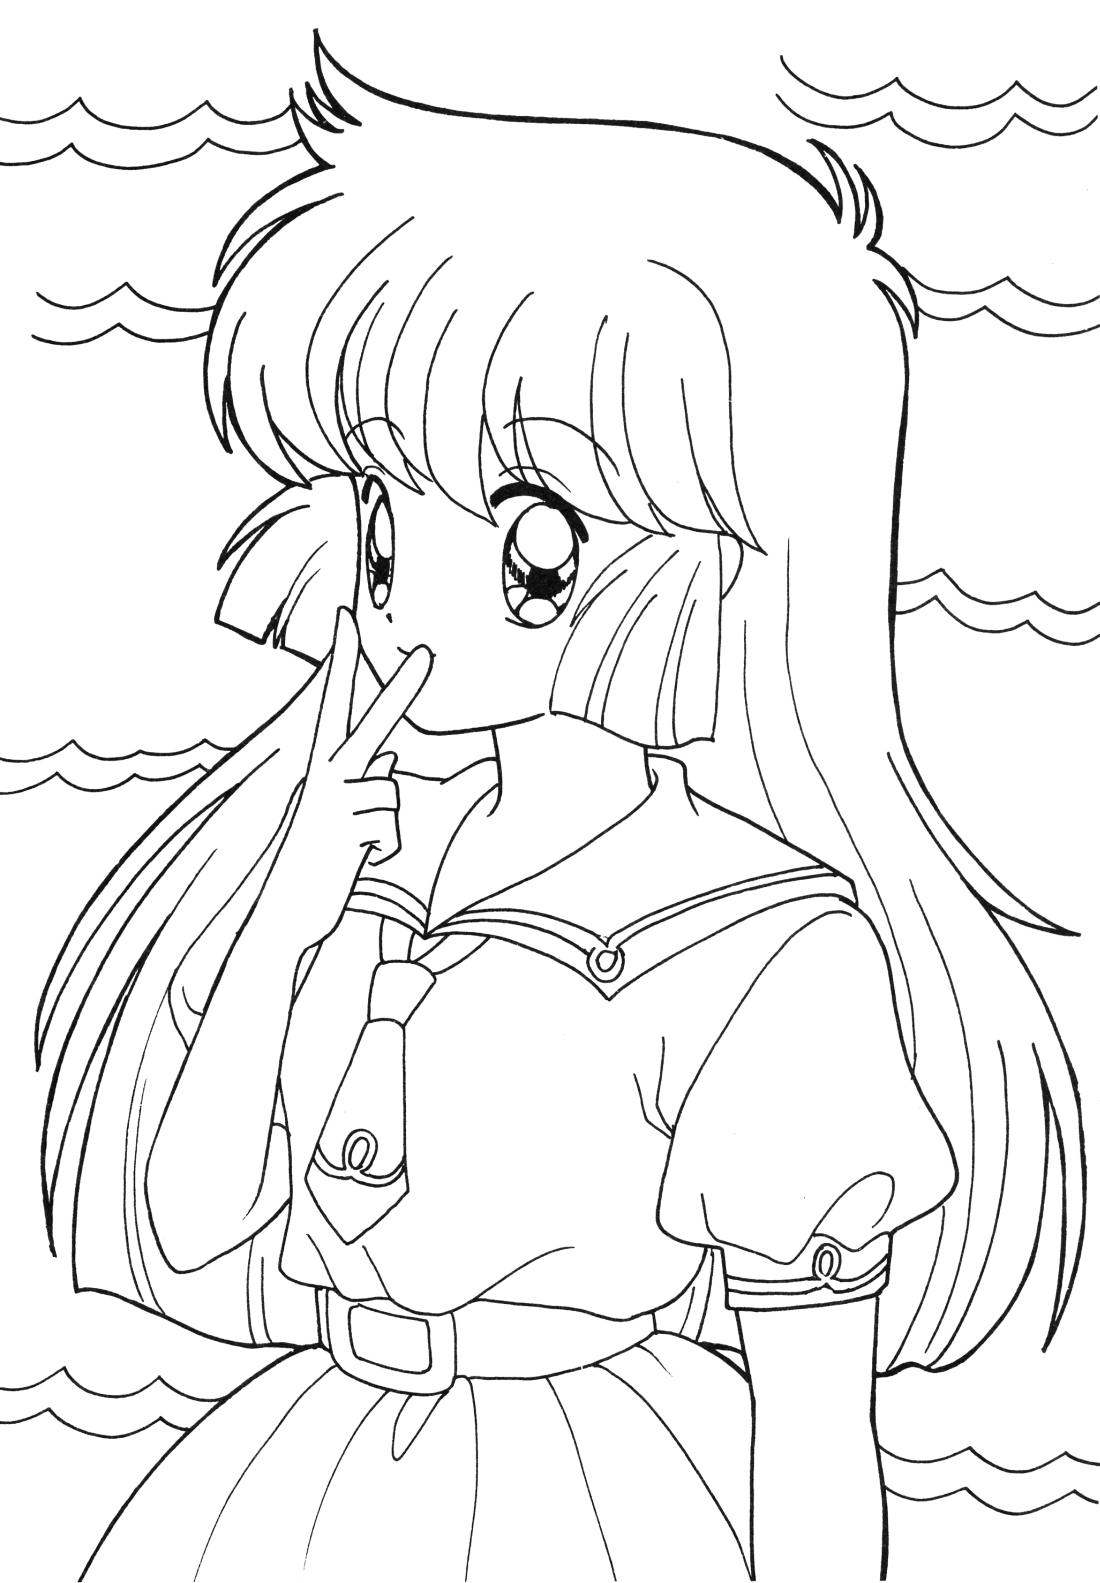 Anime School Girl Coloring Pages